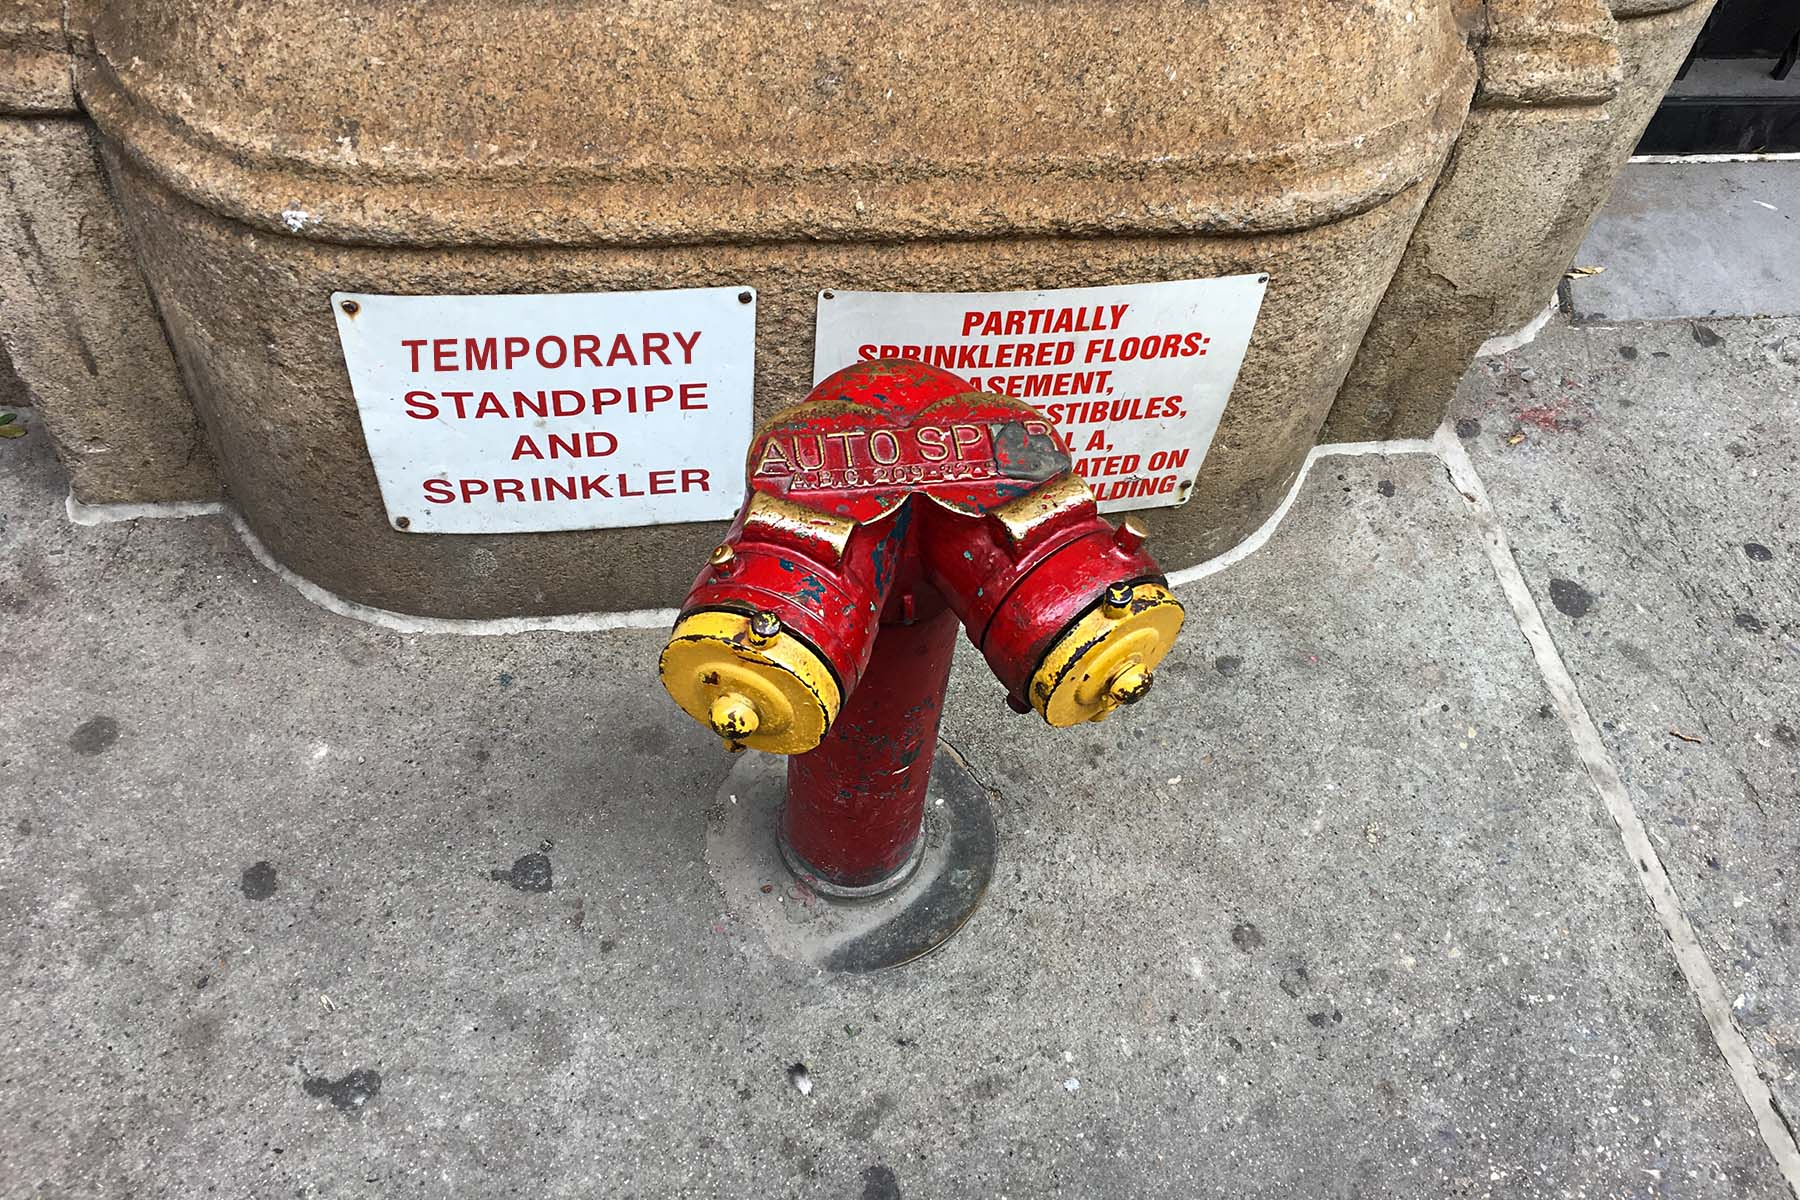 temporary standpipe